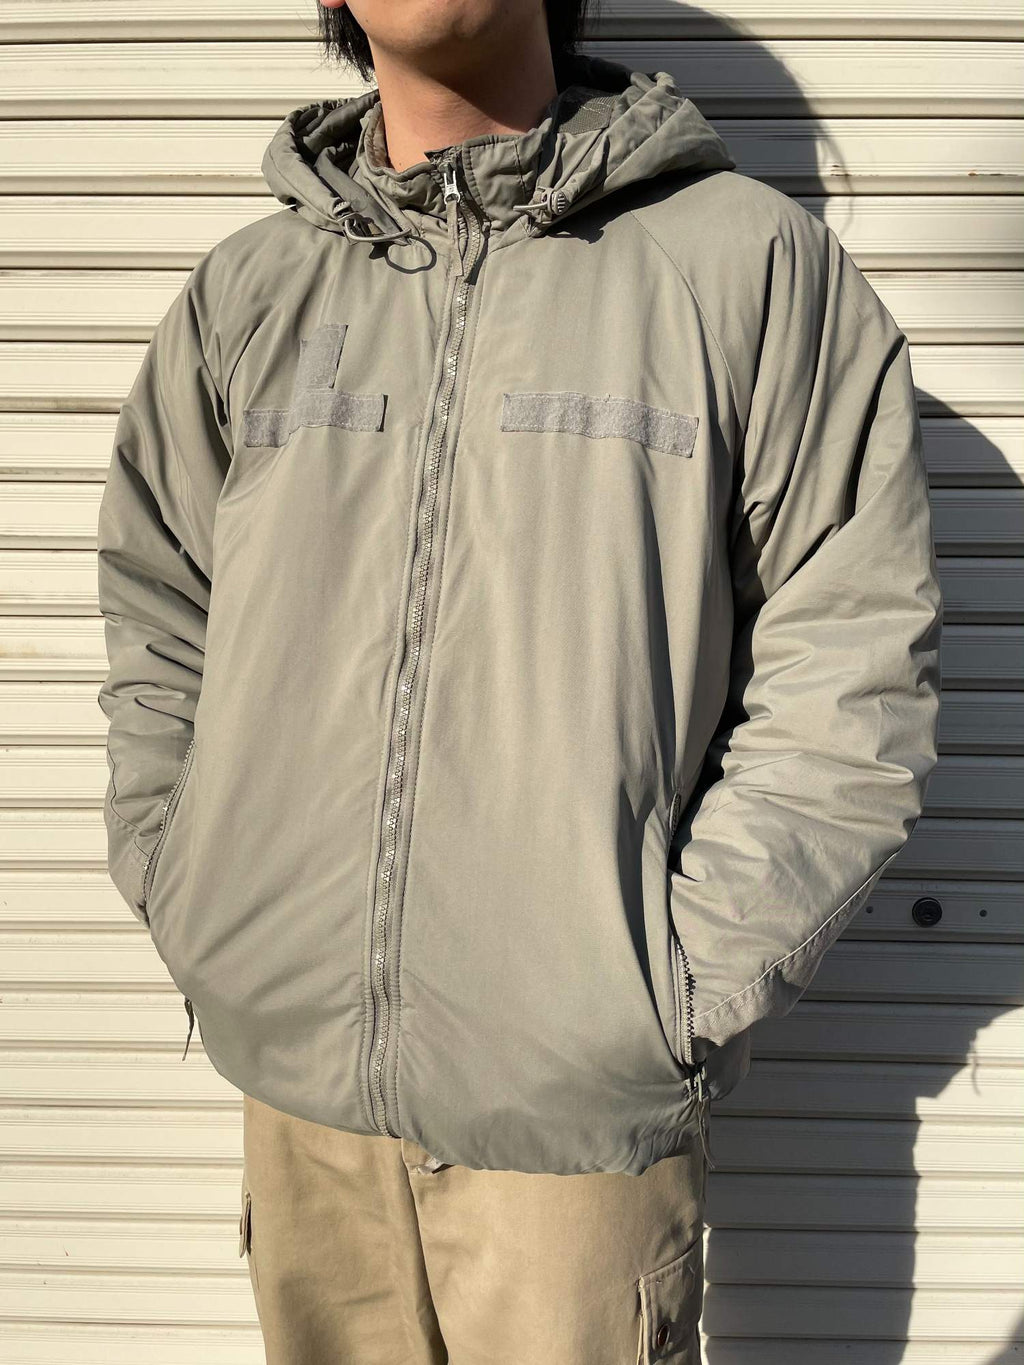 U.S.ARMY GEN 3 LEVEL7 PRIMALOFT PARKA